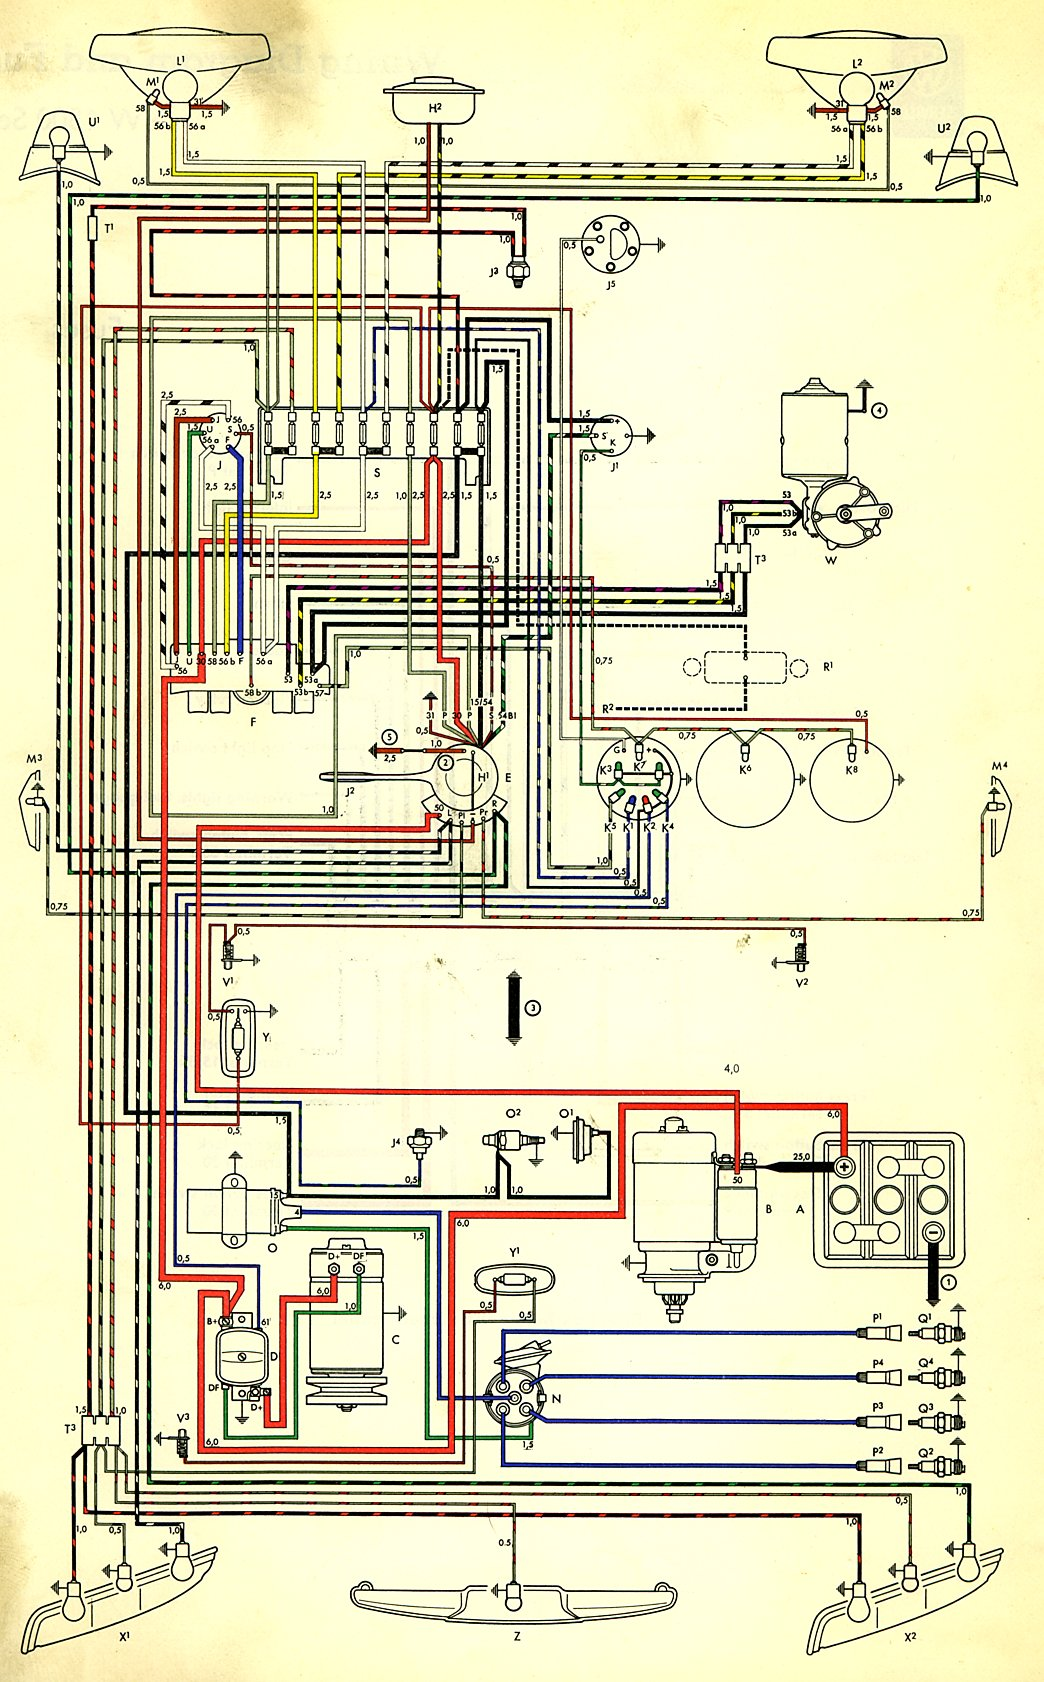 type3_61 thesamba com type 3 wiring diagrams Painless Wiring Diagram Chevy at fashall.co